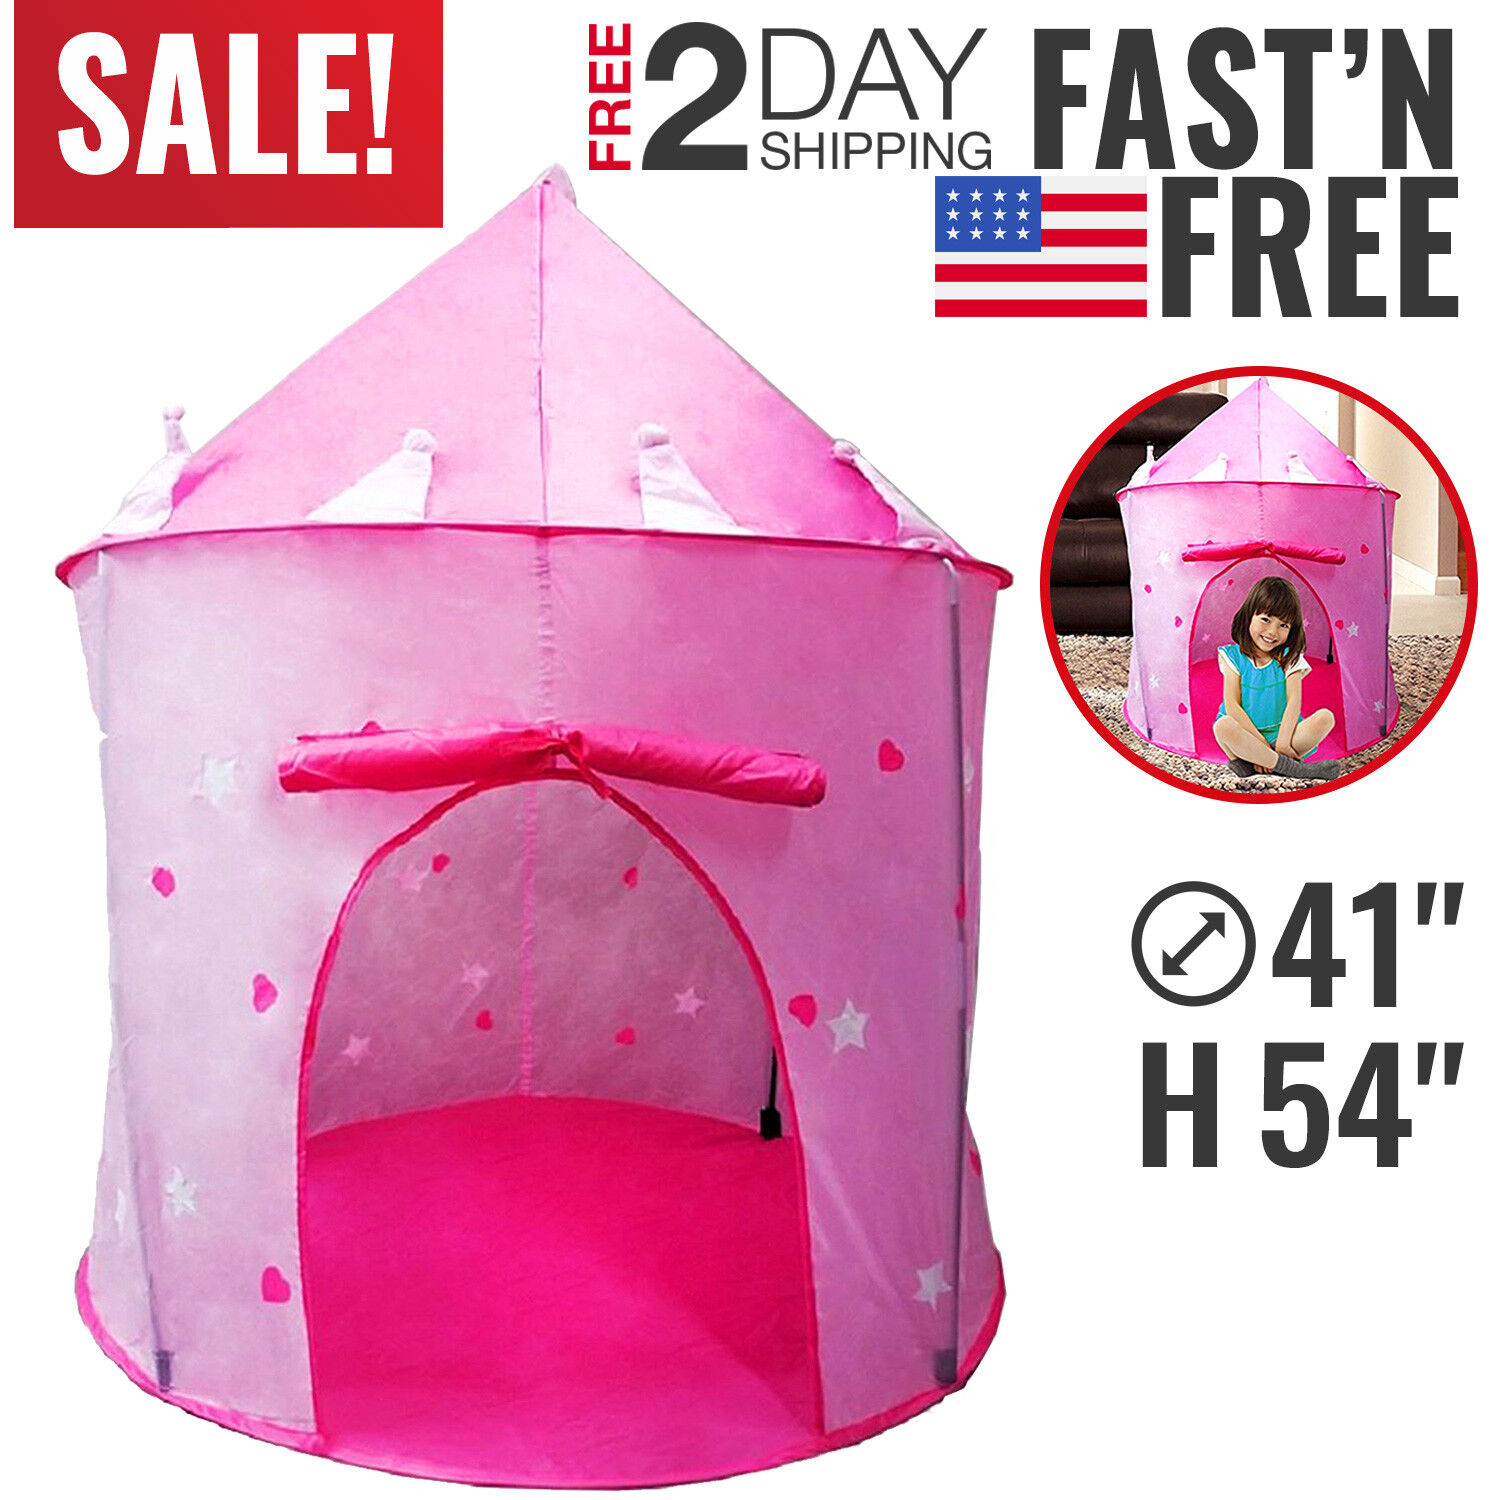 Toys For Girls Play Tent Kids Toddler 4 5 6 7 8 9 Year Old Age Girls Cool Toy  sc 1 st  eBay : girl play tent - memphite.com